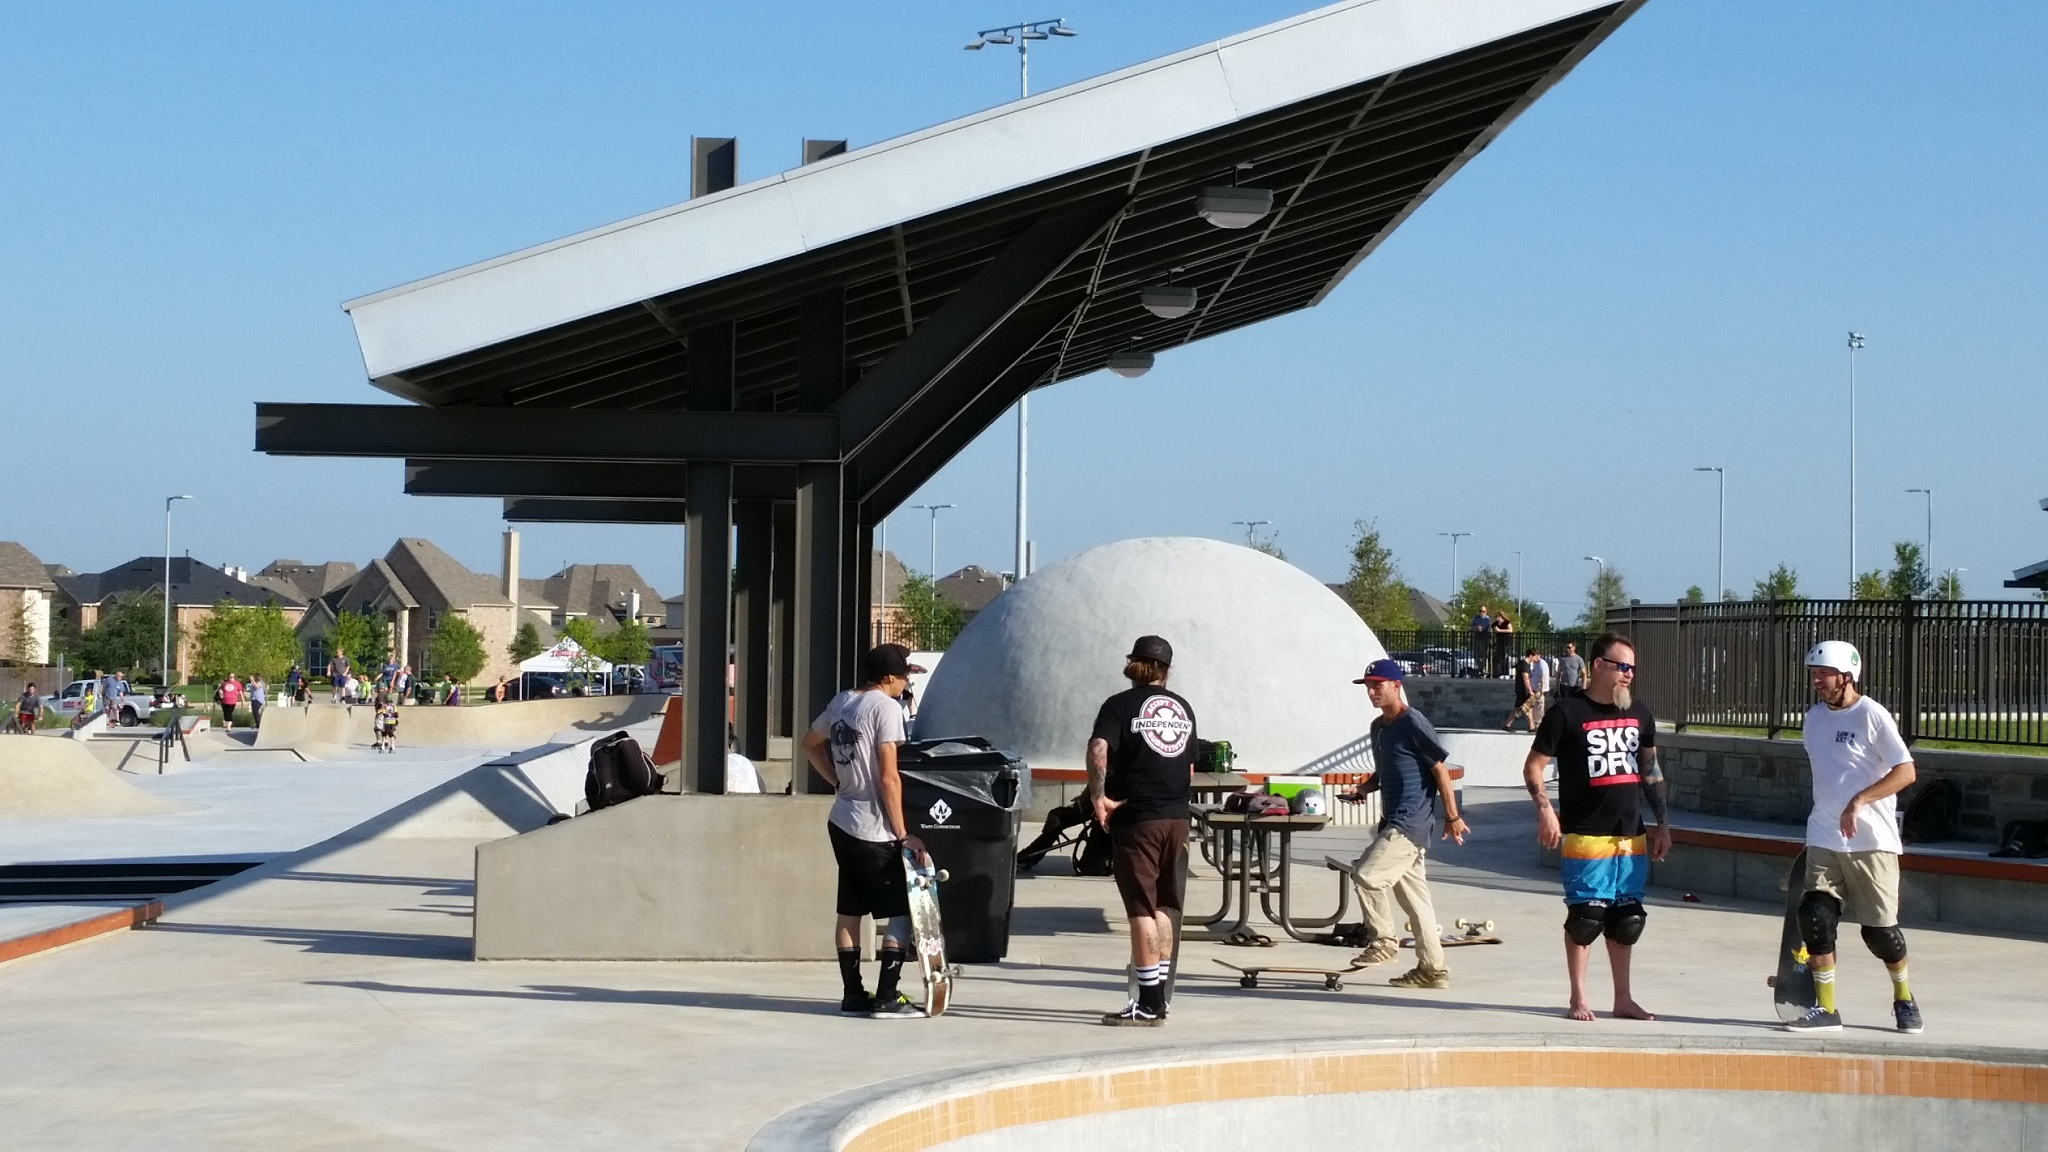 Frisco's skatepark includes shaded areas to gather and hang out with friends.